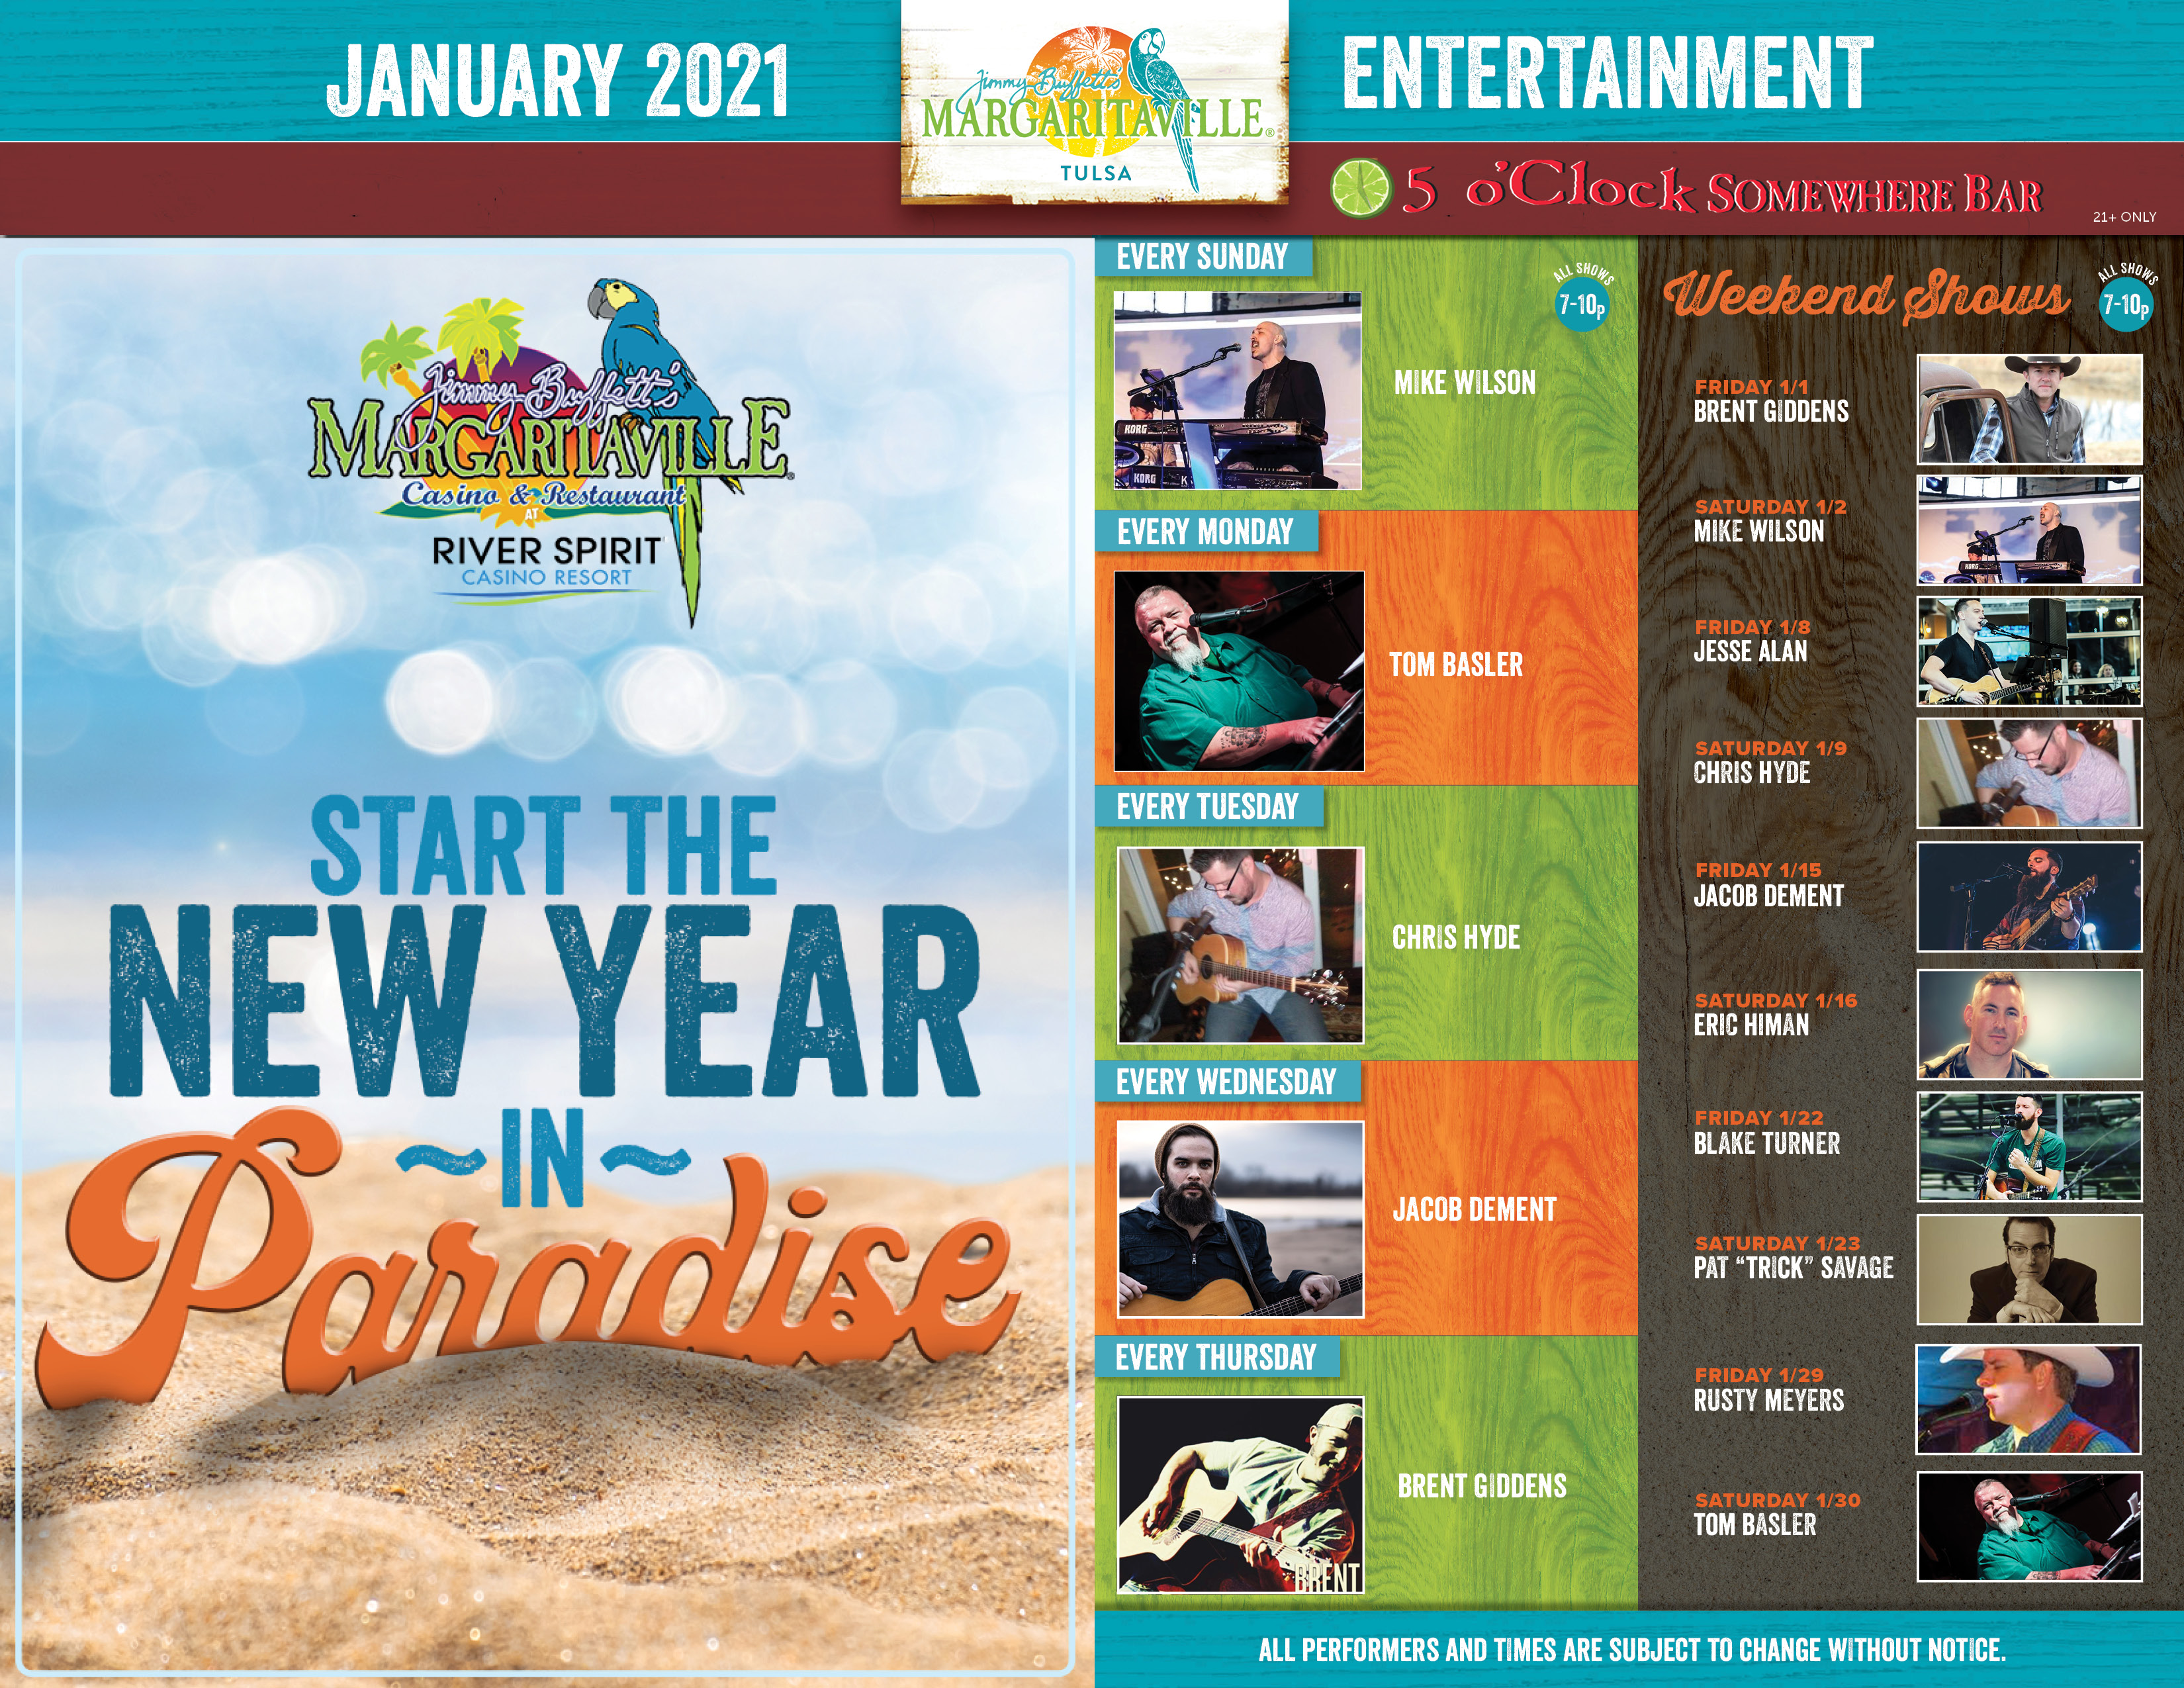 Margaritaville Tulsa January 2021 Calendar of Events. Visually impaired customers please call for assistance or read next tab